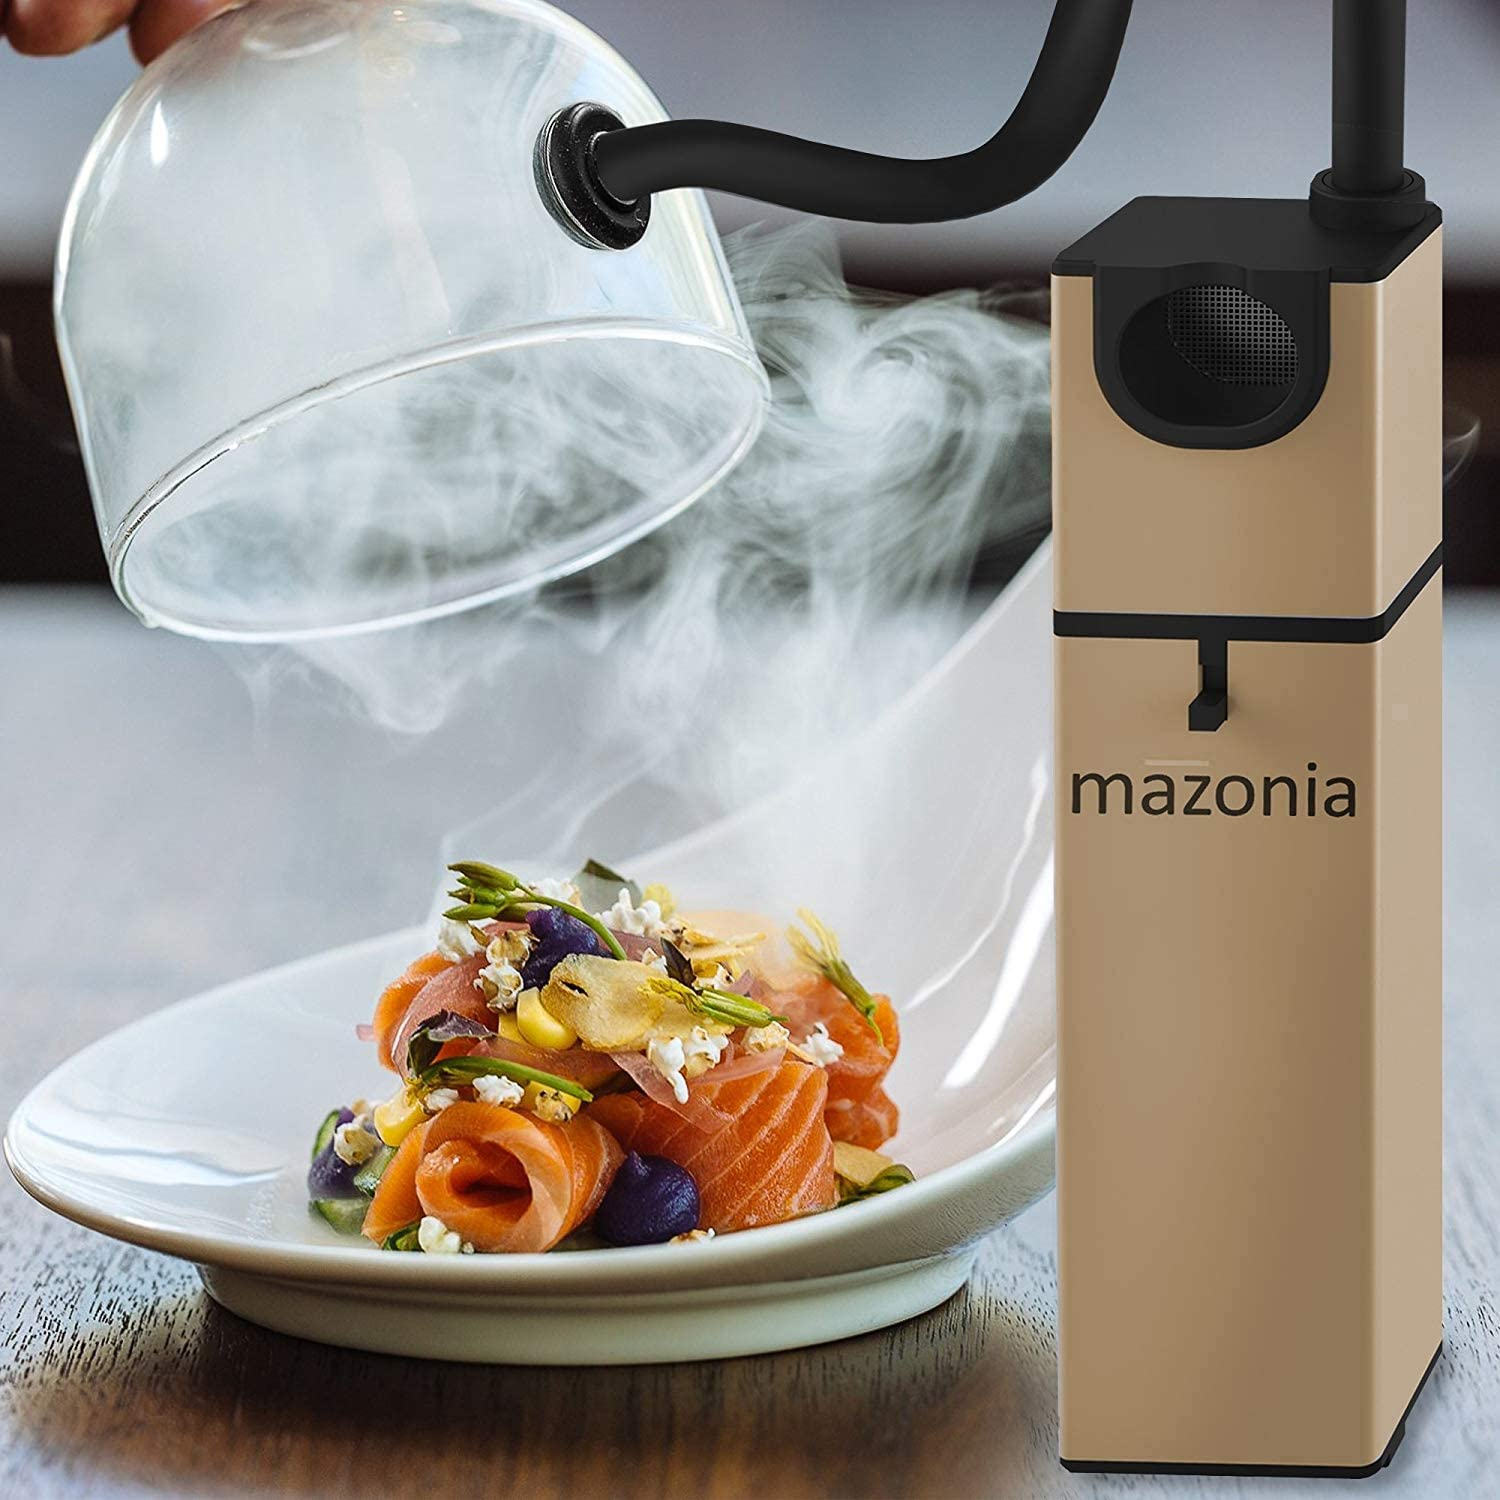 Uses Real Wood Chips BBQ For Meat,Sous Vide Mazonia Portable Infusion Smoker Gun: For Kitchen Indoor//Outdoor Gold Gold Grill Cocktail Drinks /& Cheese